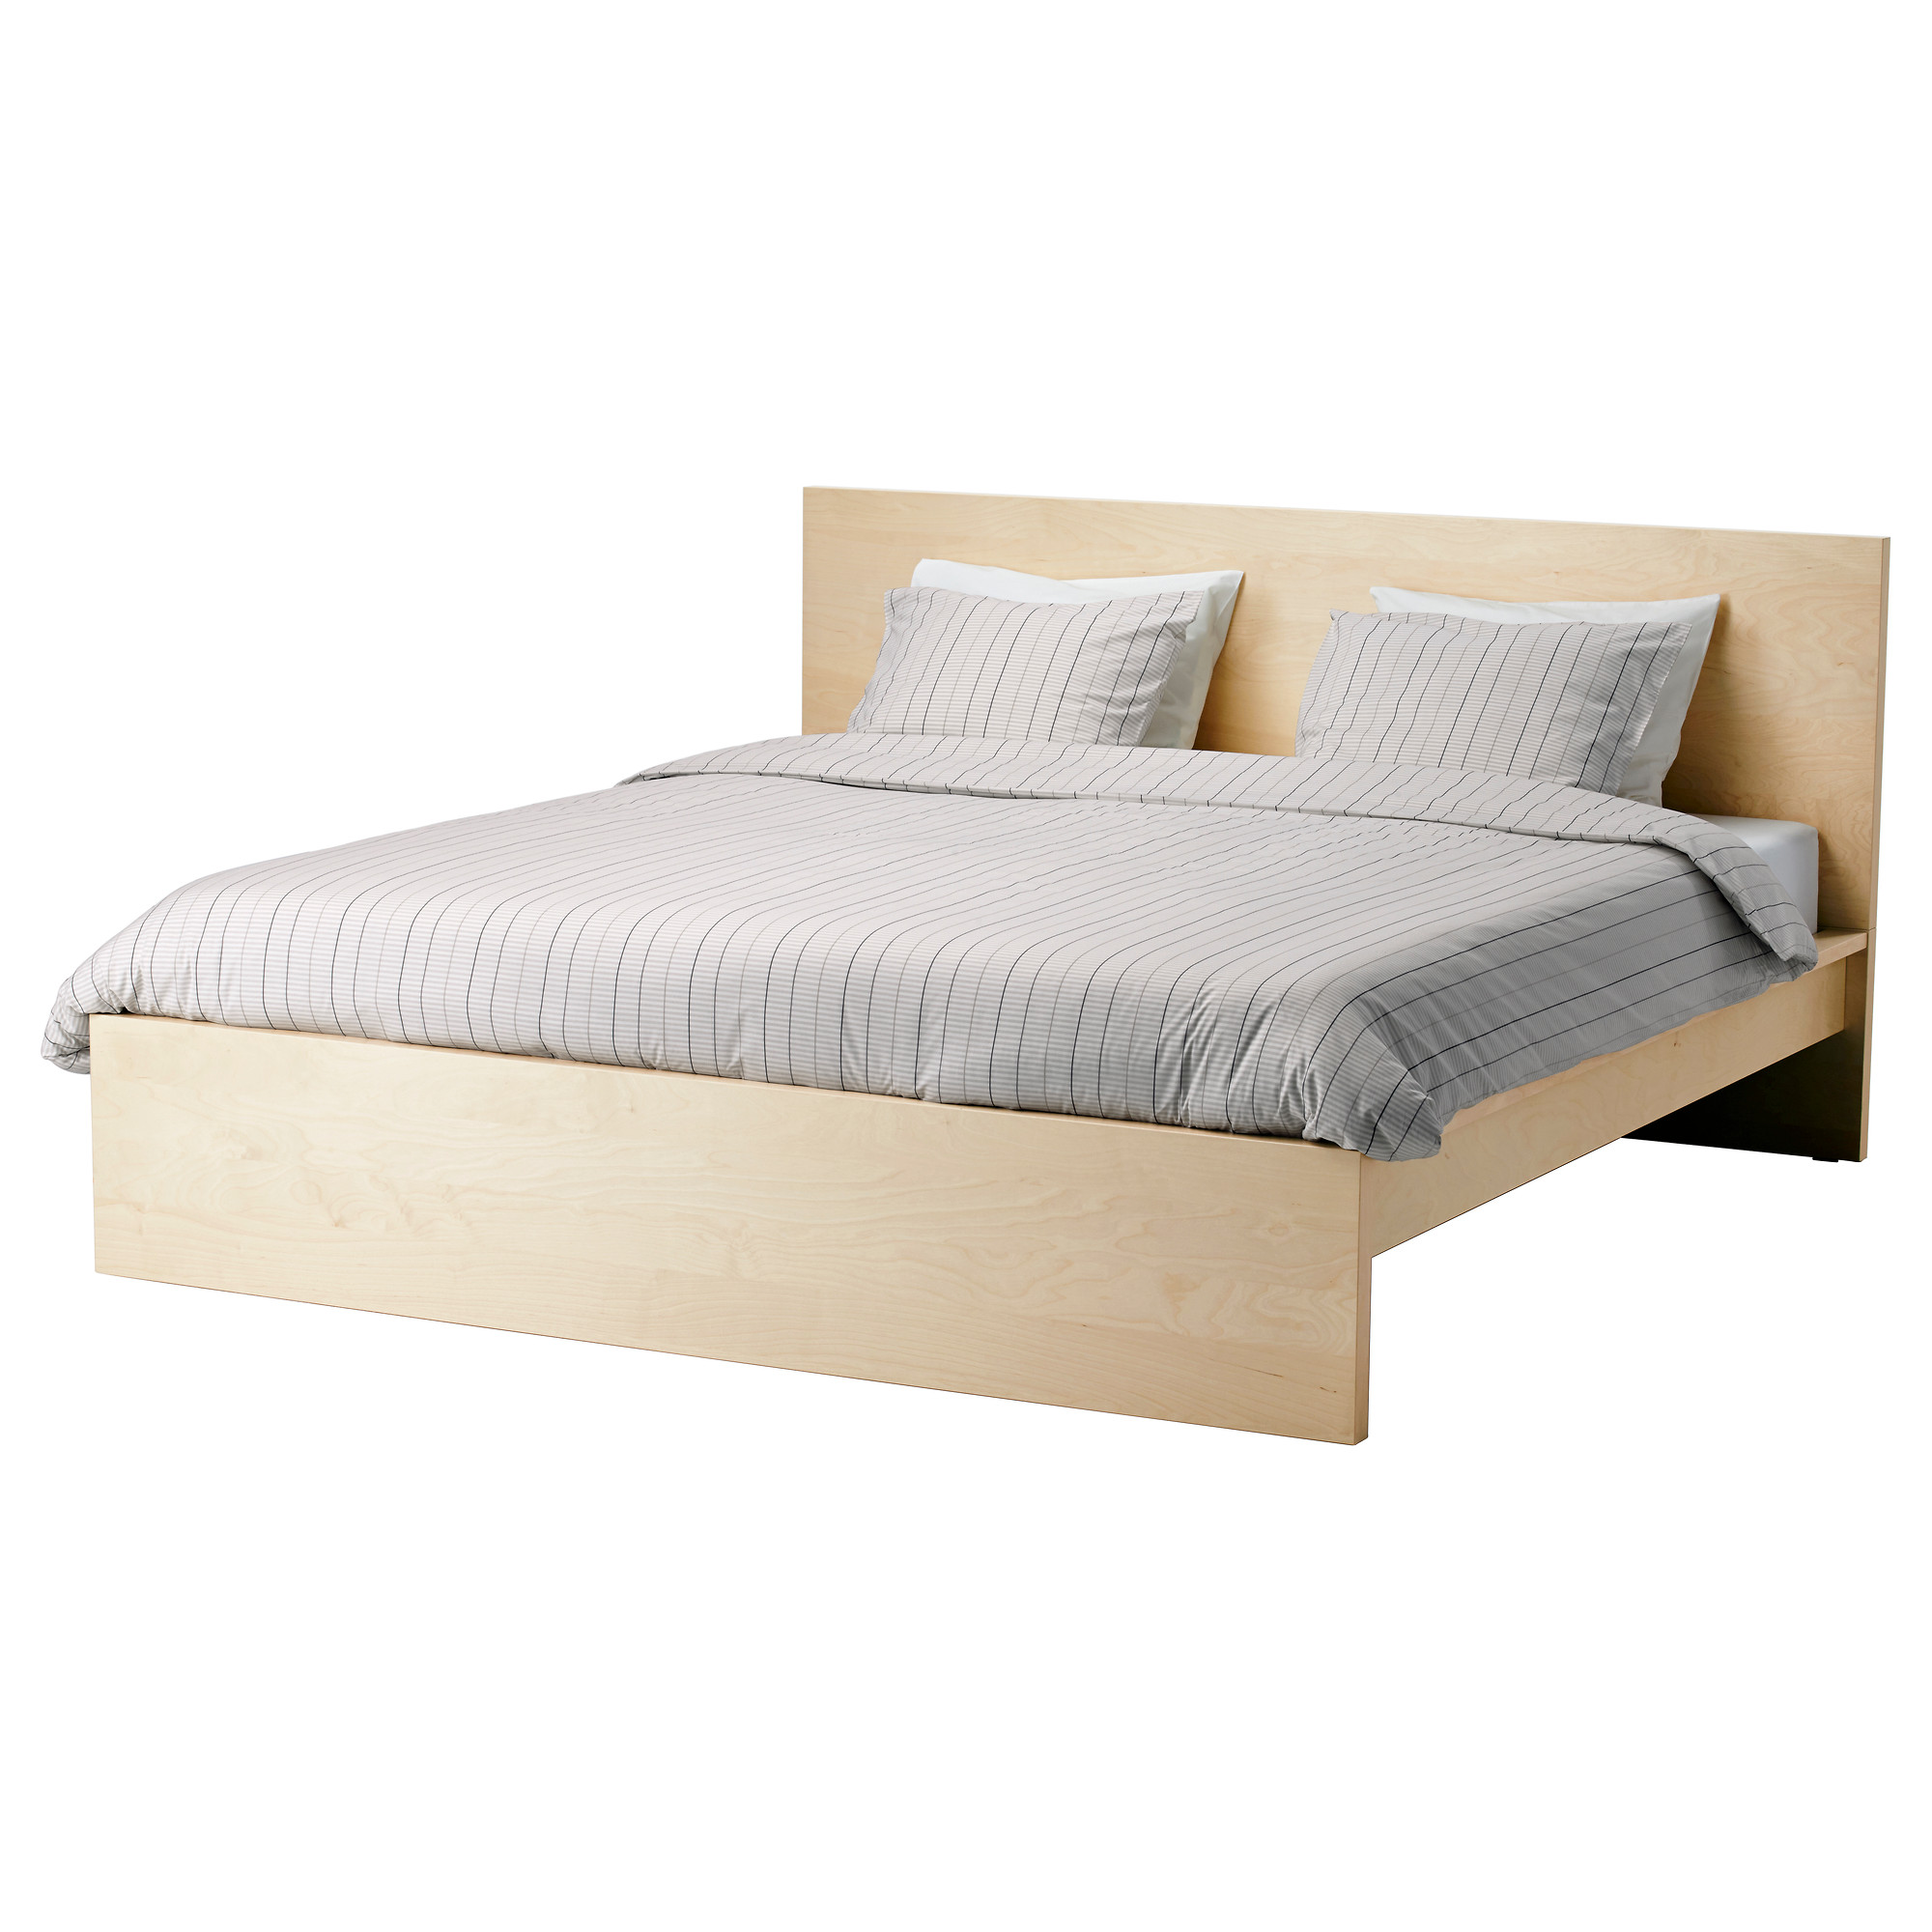 Wanted queen ikea malm bed frame similar victoria city for Queen bed frame and dresser set